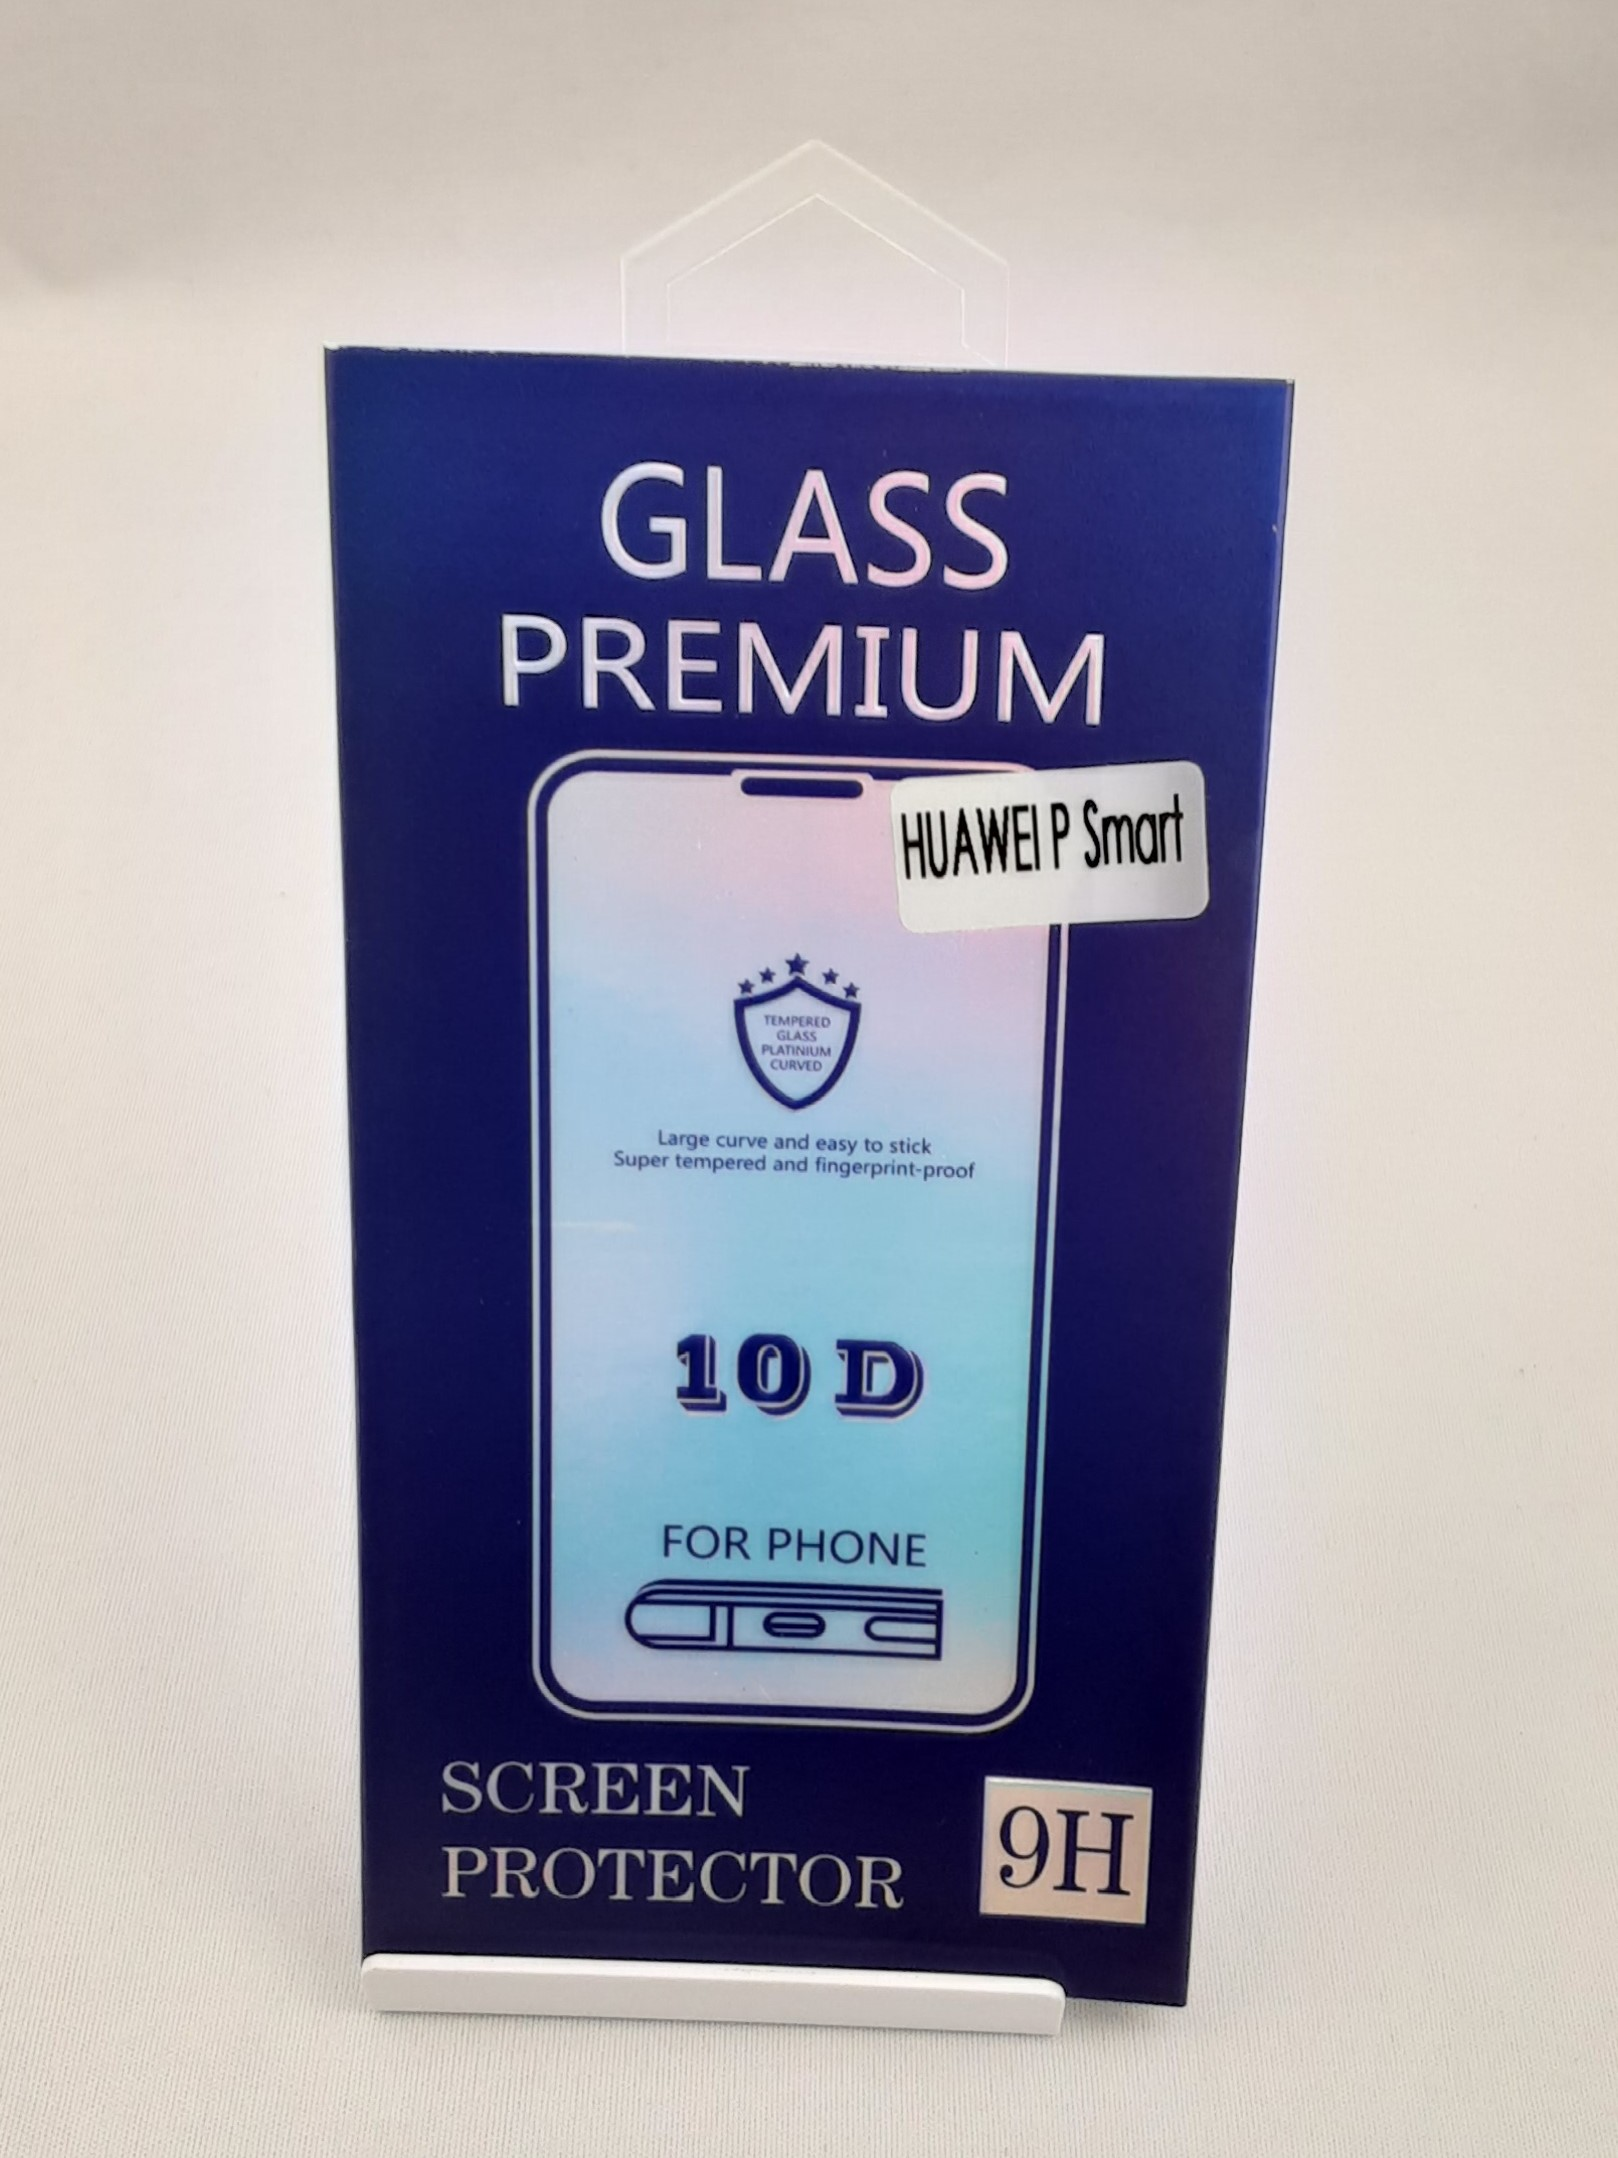 Product photo for Glass Premium HUAWEI P SMART TEMP GLASS